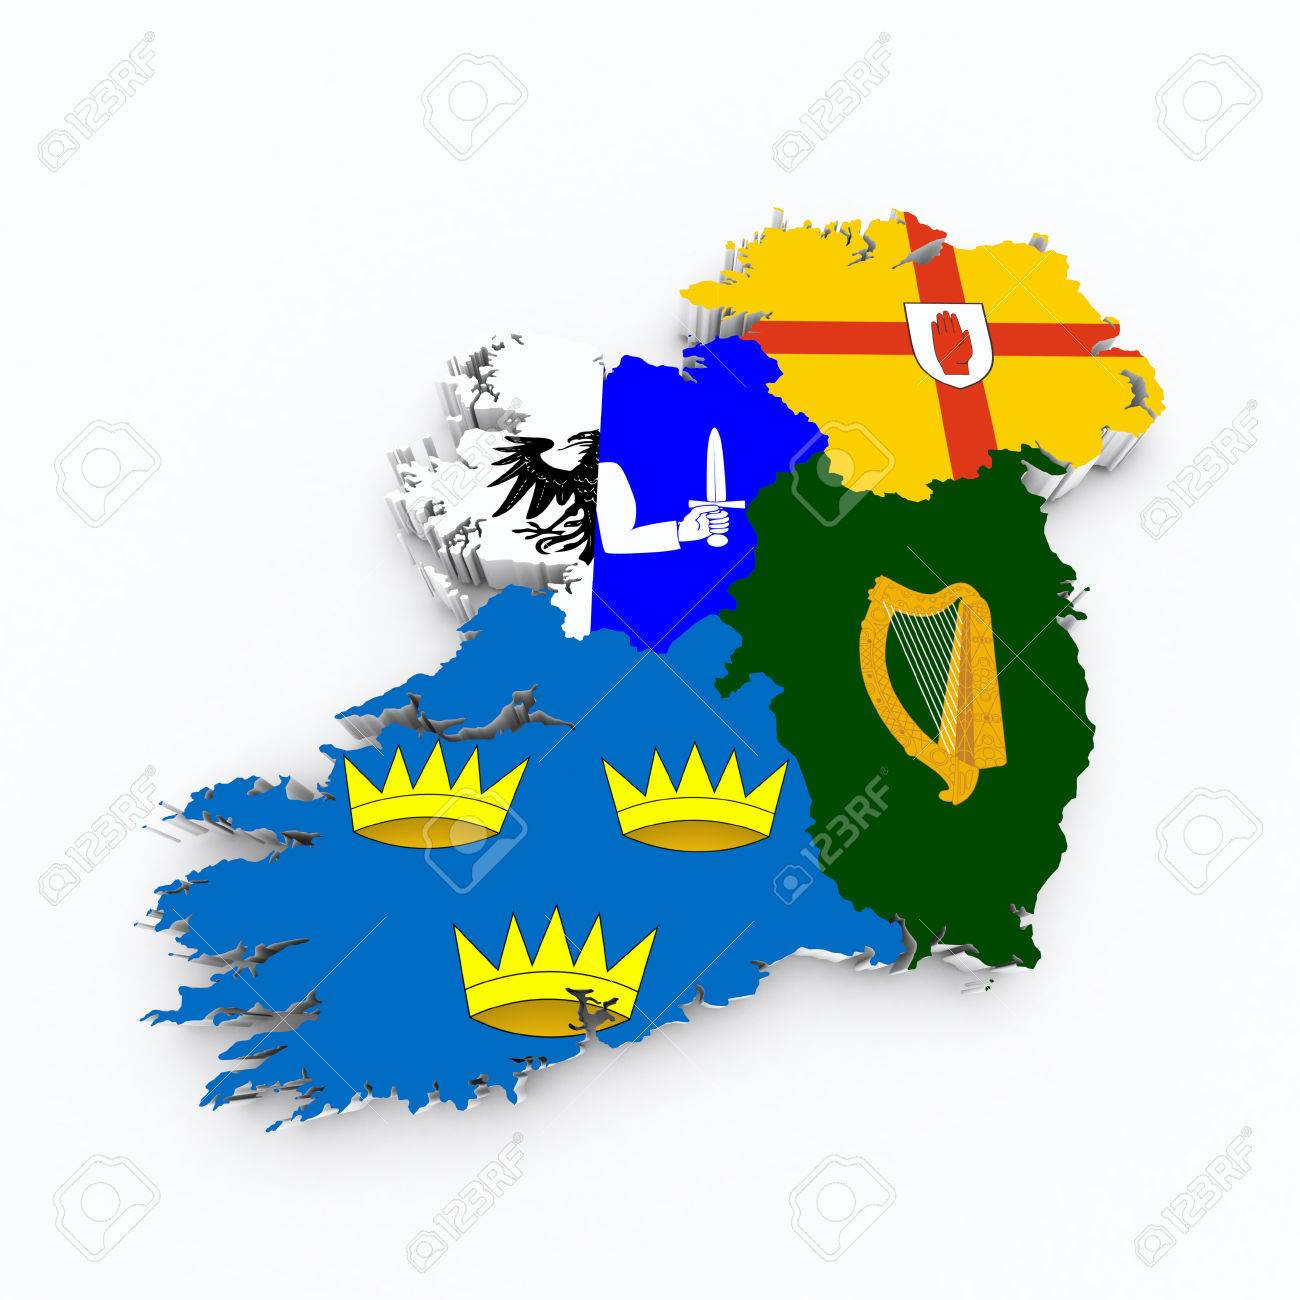 Ireland Four Provinces Flags On D Map Stock Photo Picture And - Ireland provinces map